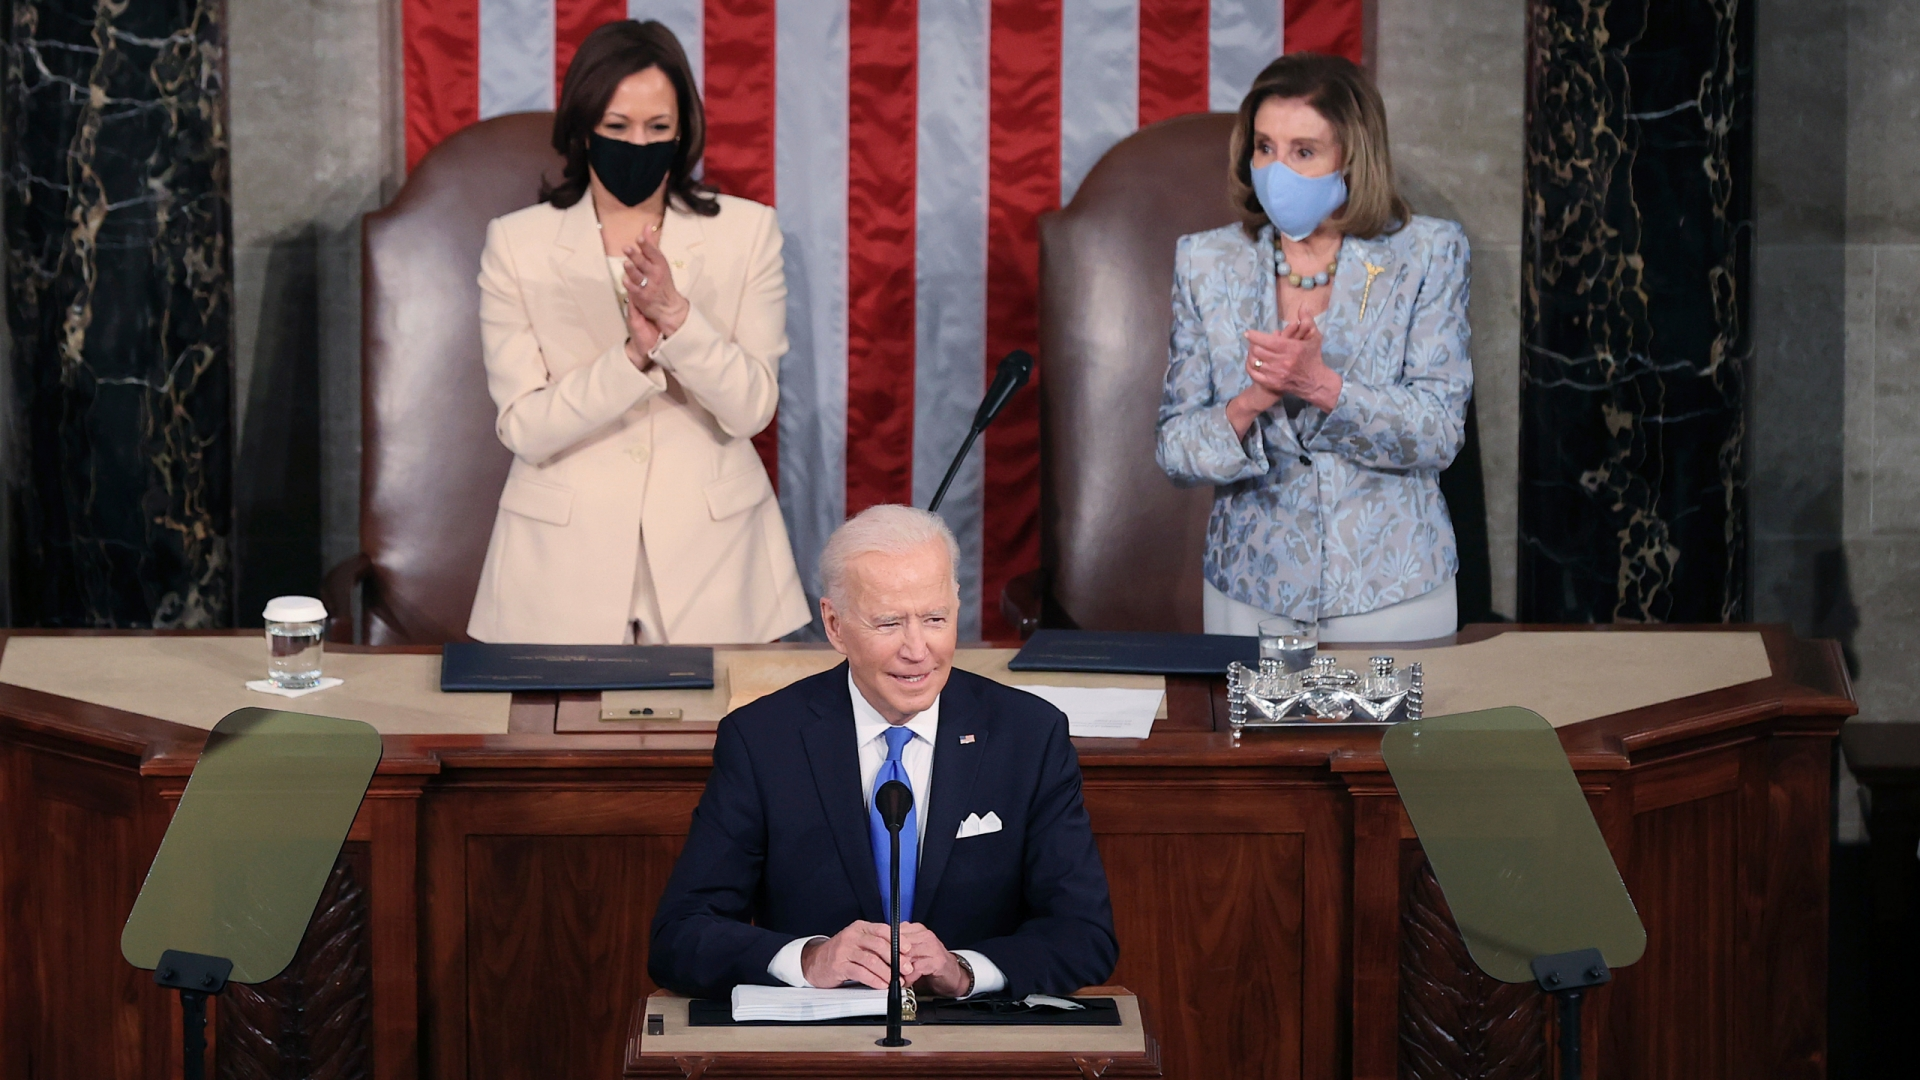 World breaking news today (April 29): First lady hosts virtual guests for Biden address to congress